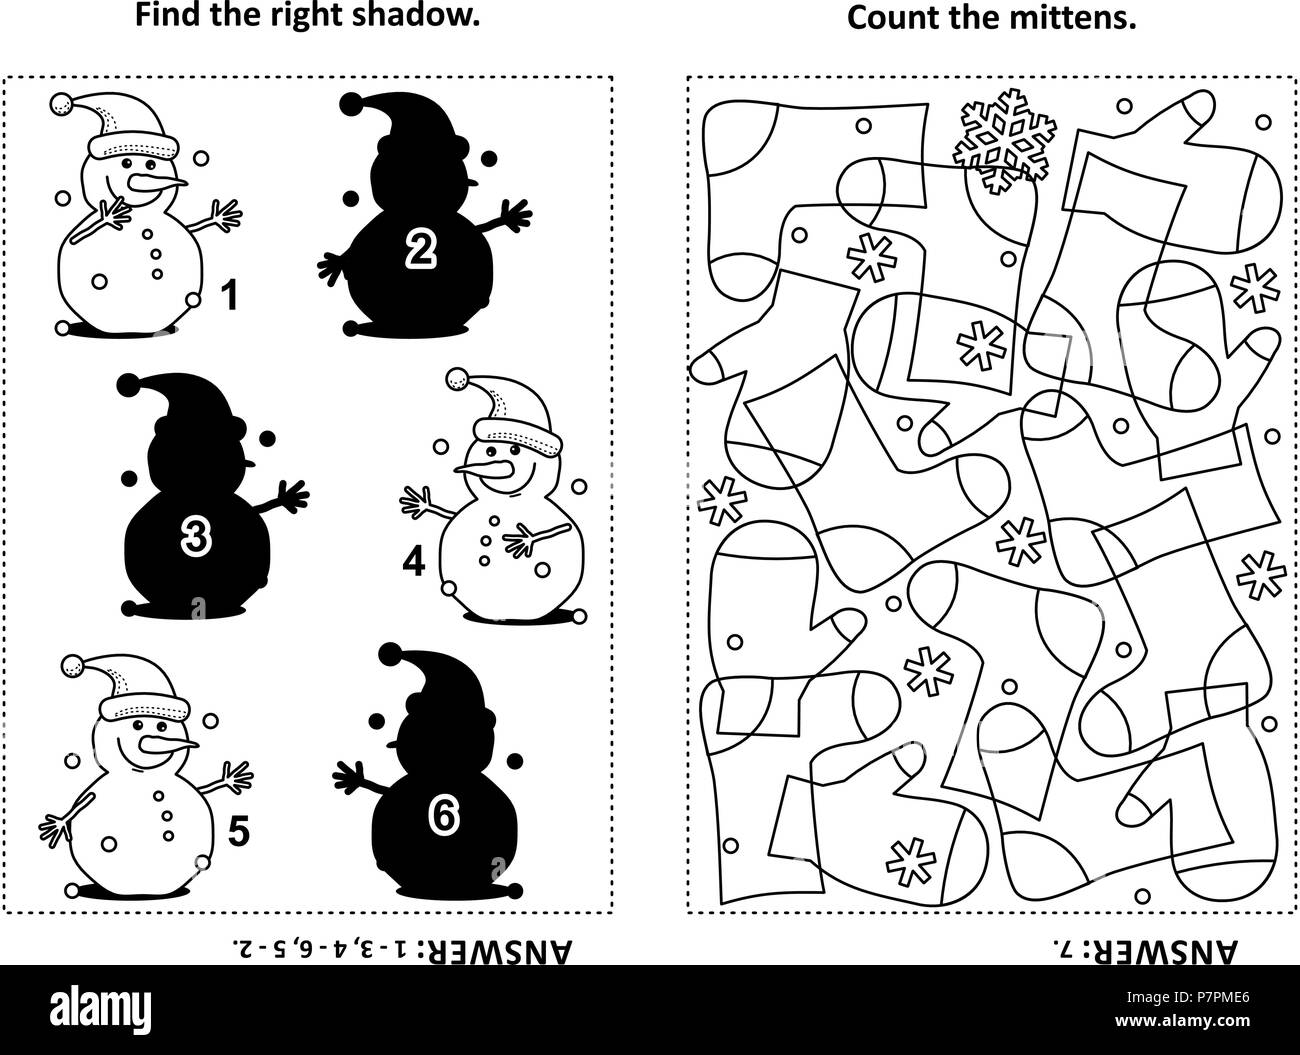 Two visual puzzles and coloring page for kids find the right shadow for each picture of snowman count the mittens black and white answers included